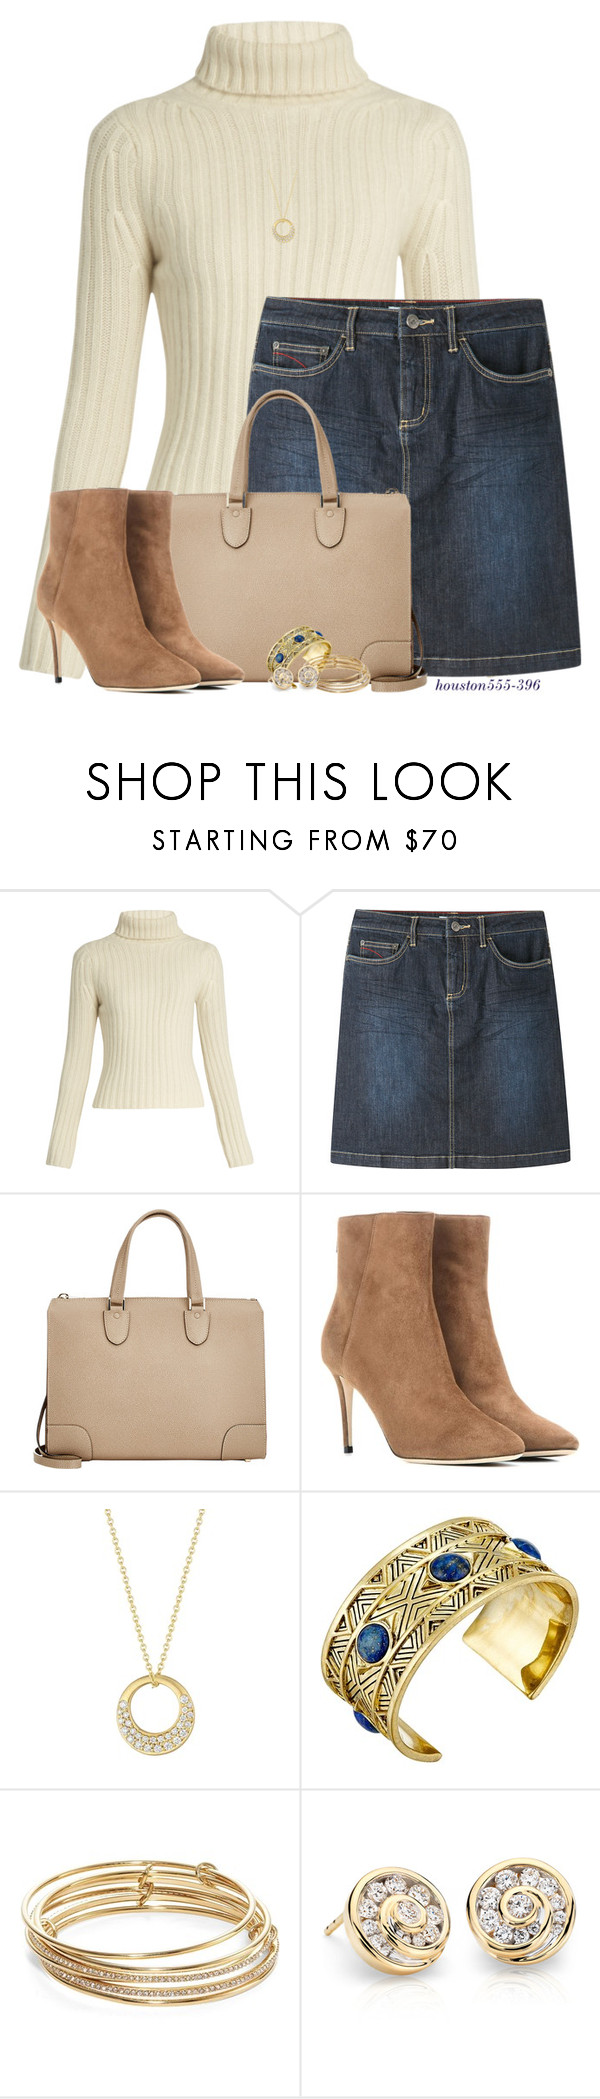 """""""Cute Jean Skirt!"""" by houston555-396 ❤ liked on Polyvore featuring Ryan Roche, Mountain Khakis, Valextra, Jimmy Choo, Carelle, House of Harlow 1960 and Kate Spade"""